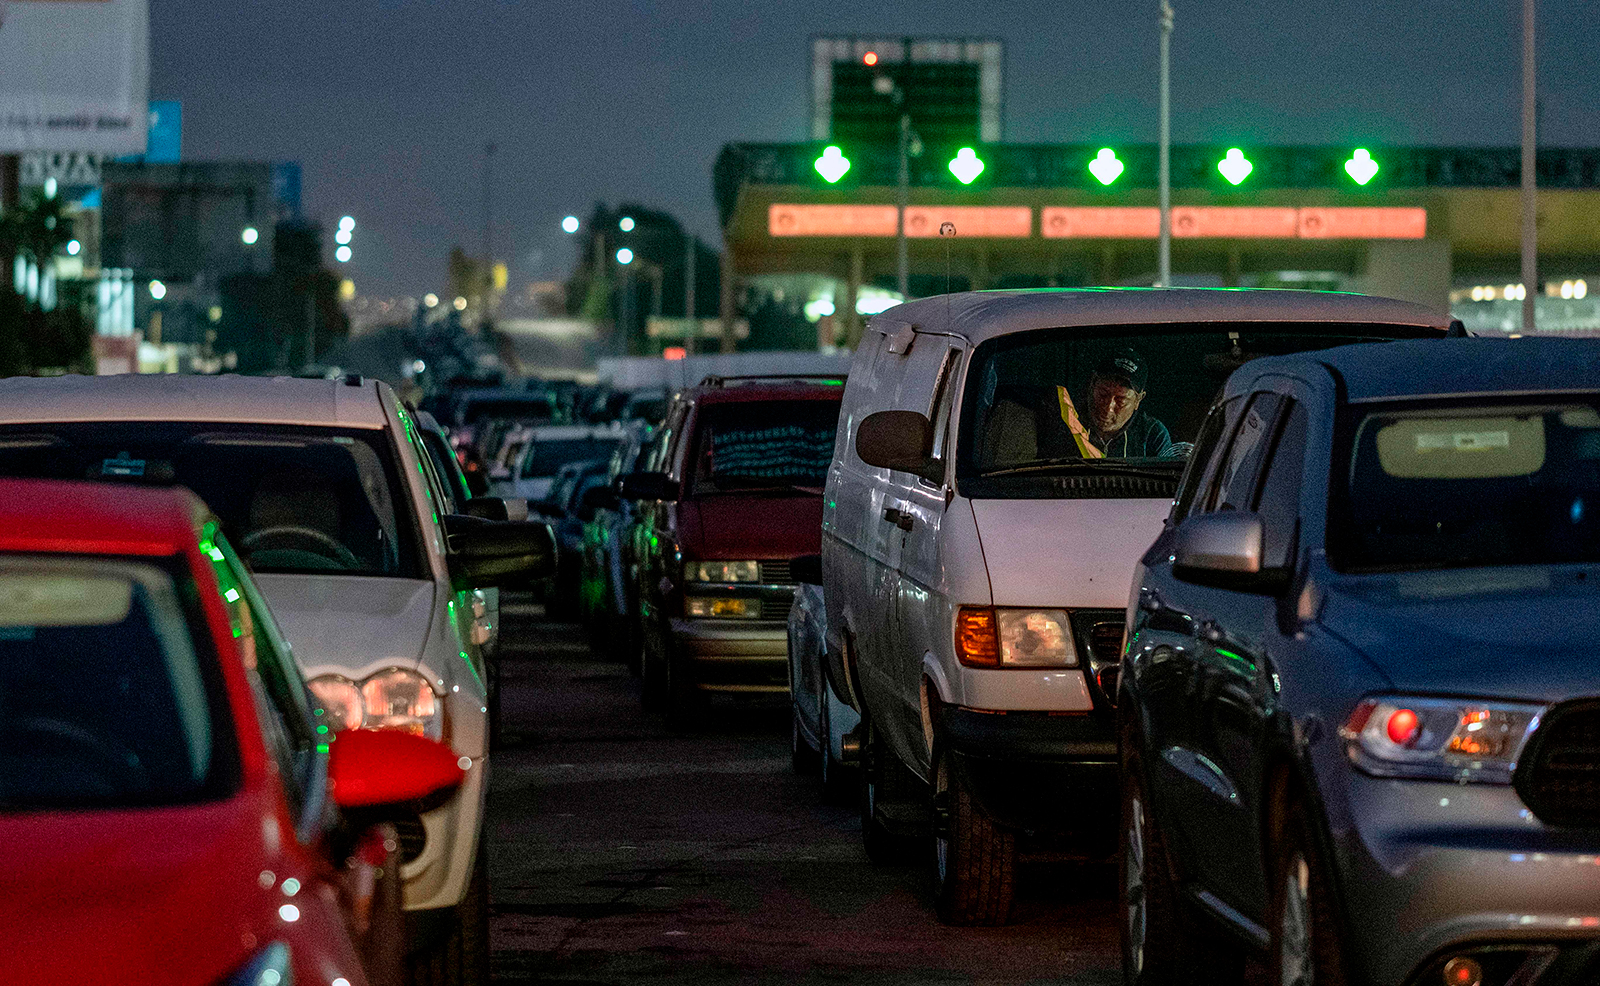 Commuters line up while waiting for the Otay Mesa Port of Entry to open to cross to the United States from Tijuana, Baja California state, Mexico, on early May 20, 2020. (GUILLERMO ARIAS/AFP via Getty Images)